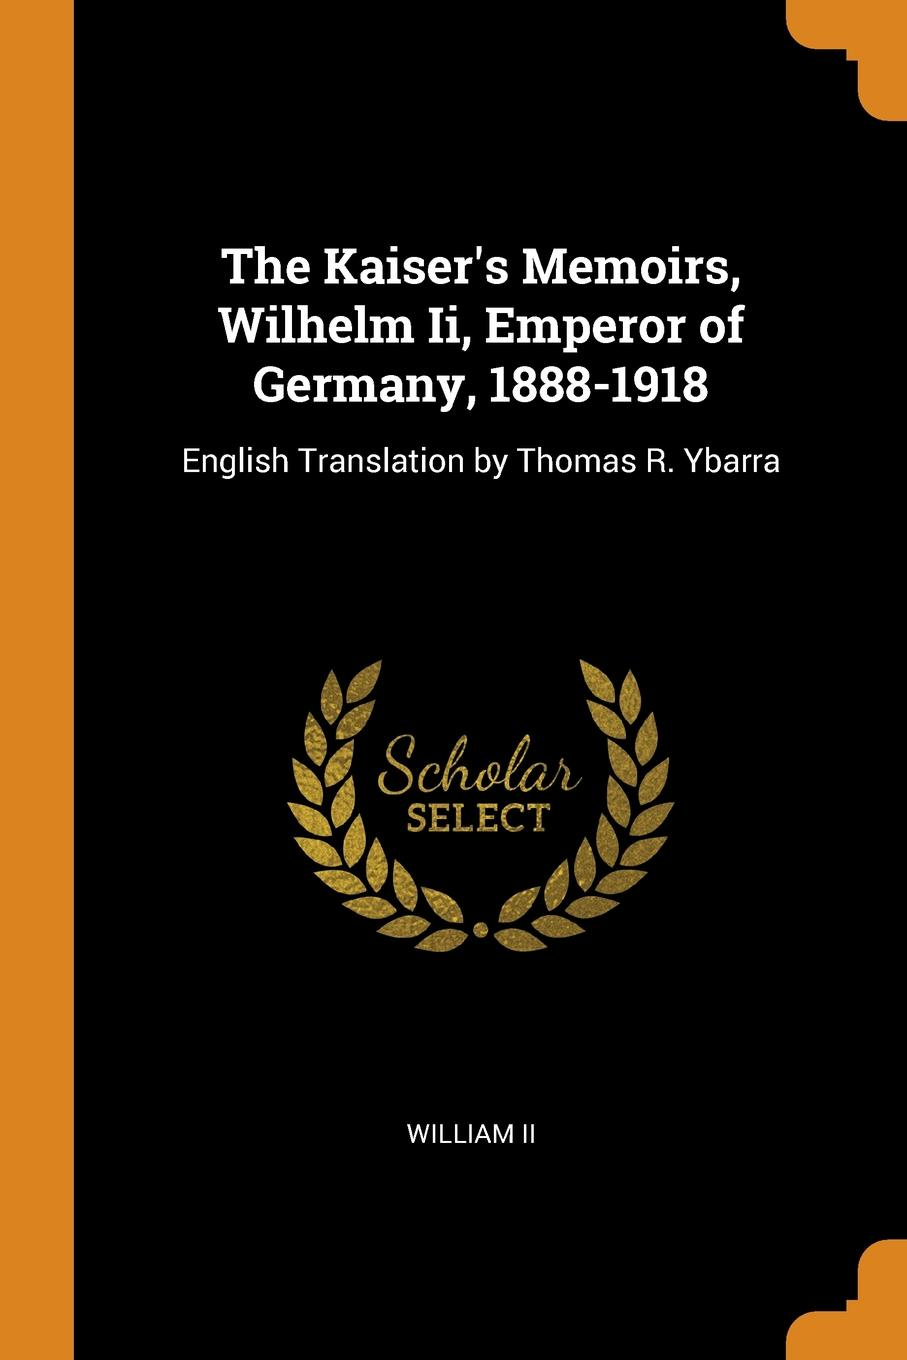 William II The Kaiser.s Memoirs, Wilhelm Ii, Emperor of Germany, 1888-1918. English Translation by Thomas R. Ybarra